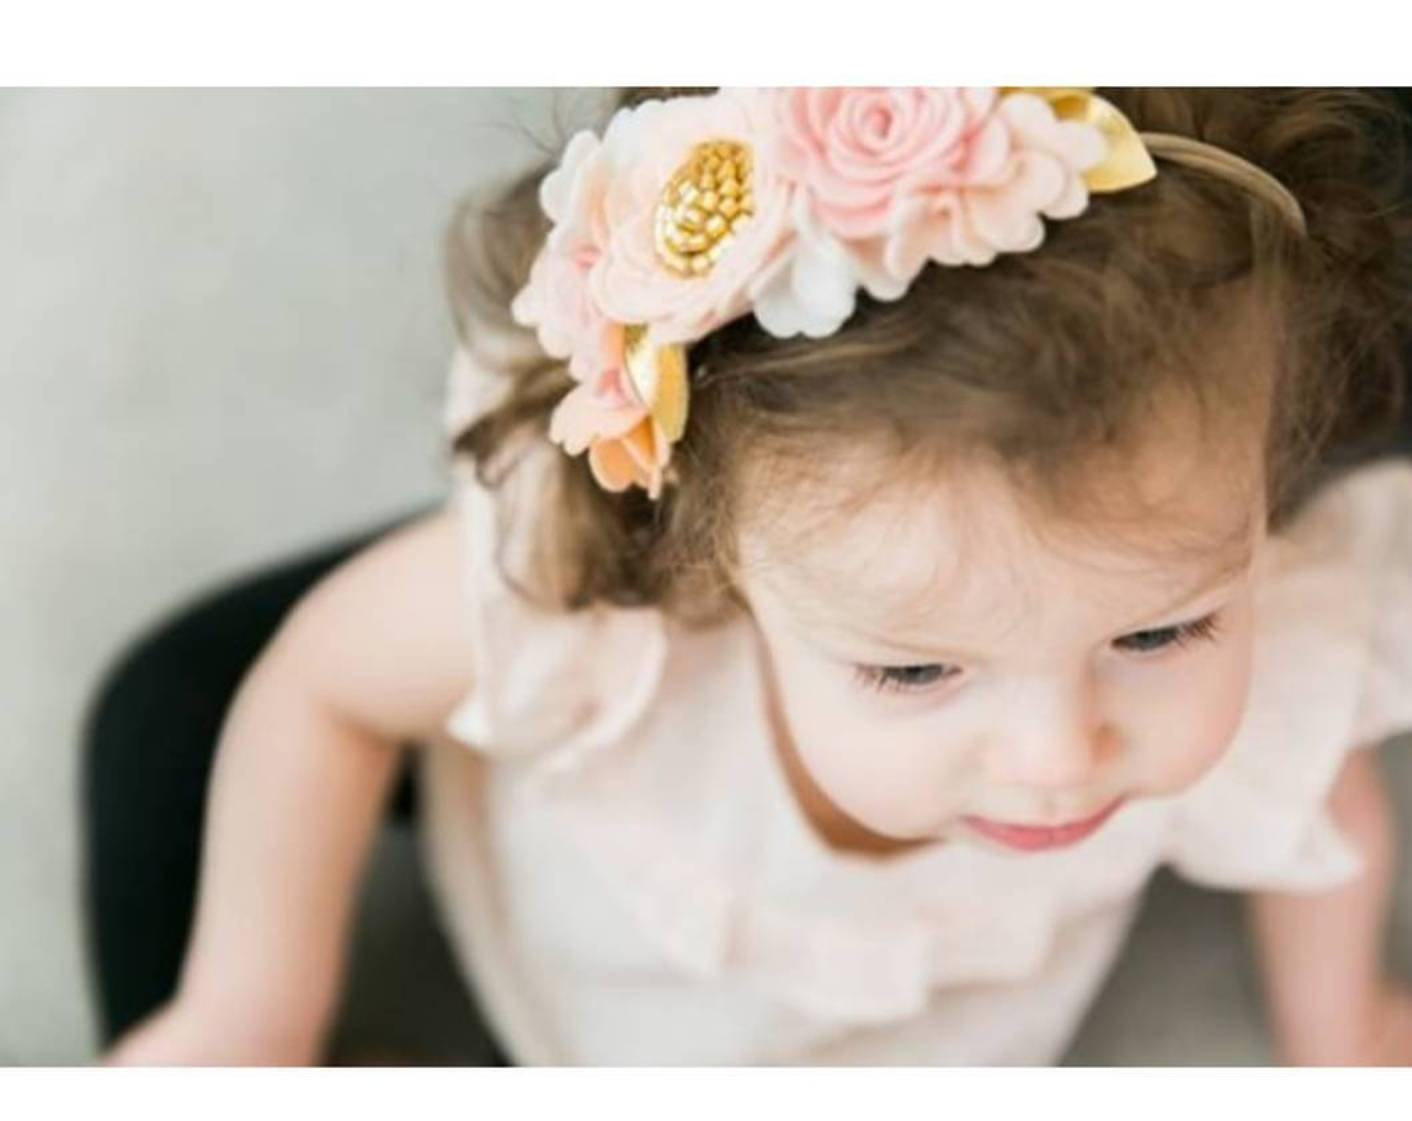 Blush, Flower Crown, Floral Headband, felt flower, hair accessories, baby headband, vanaguelite, baby accessories.